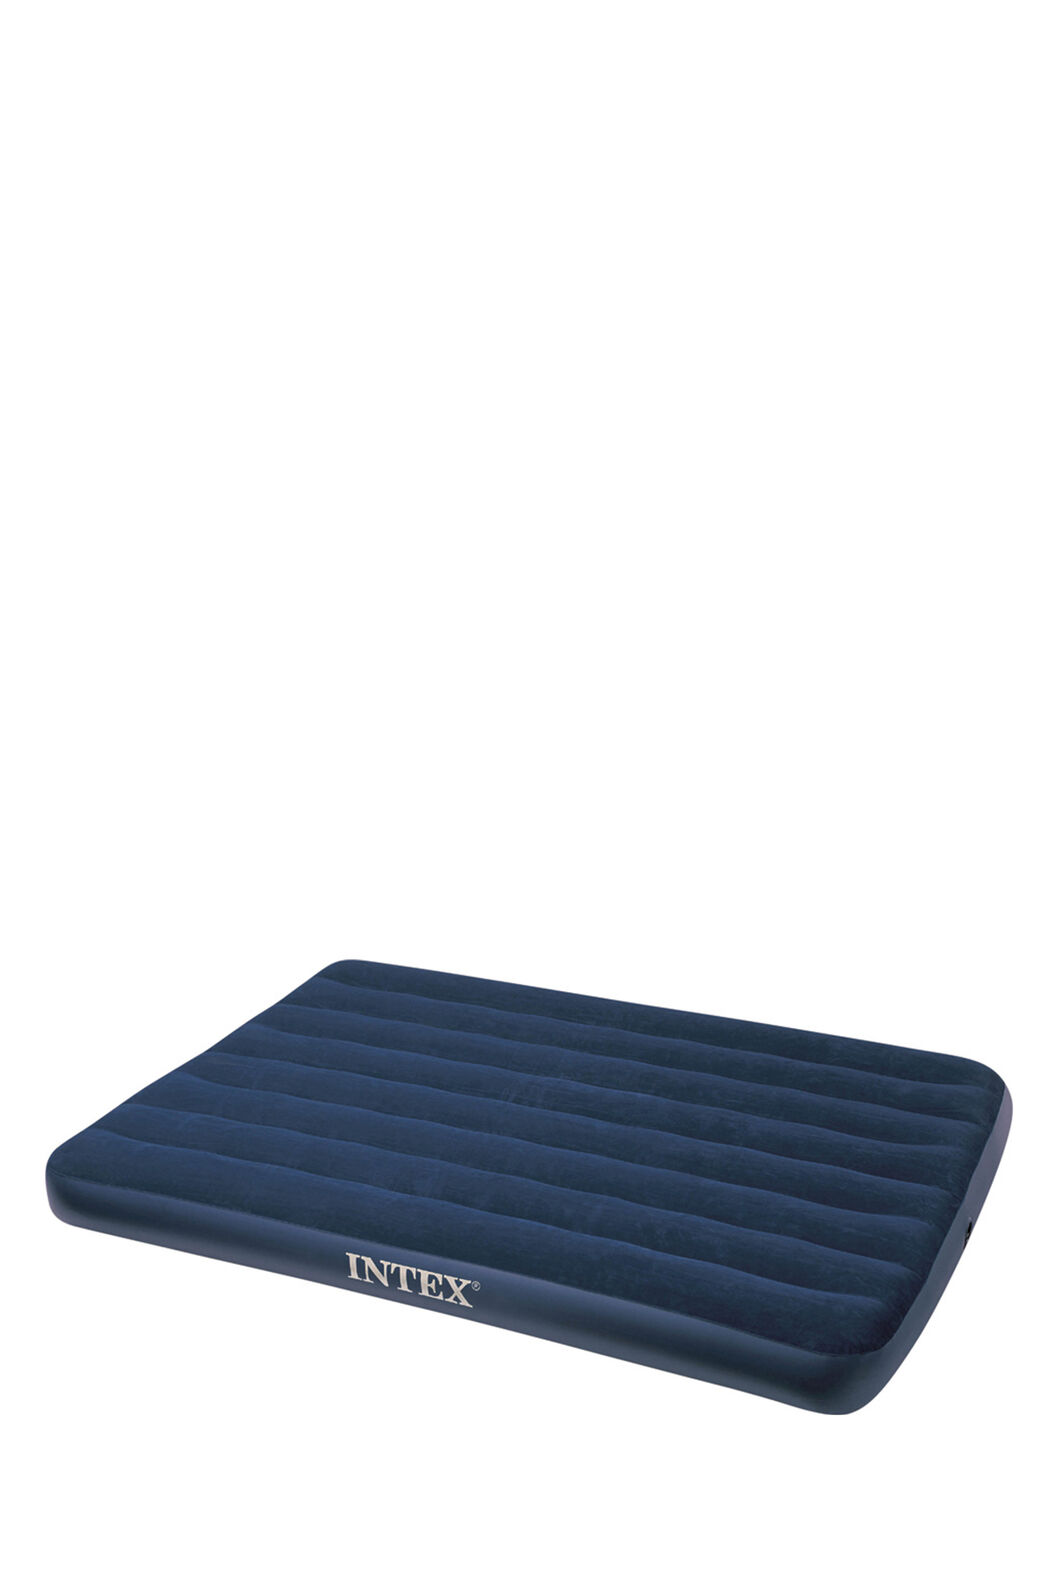 Intex Double Downy Air Bed, None, hi-res